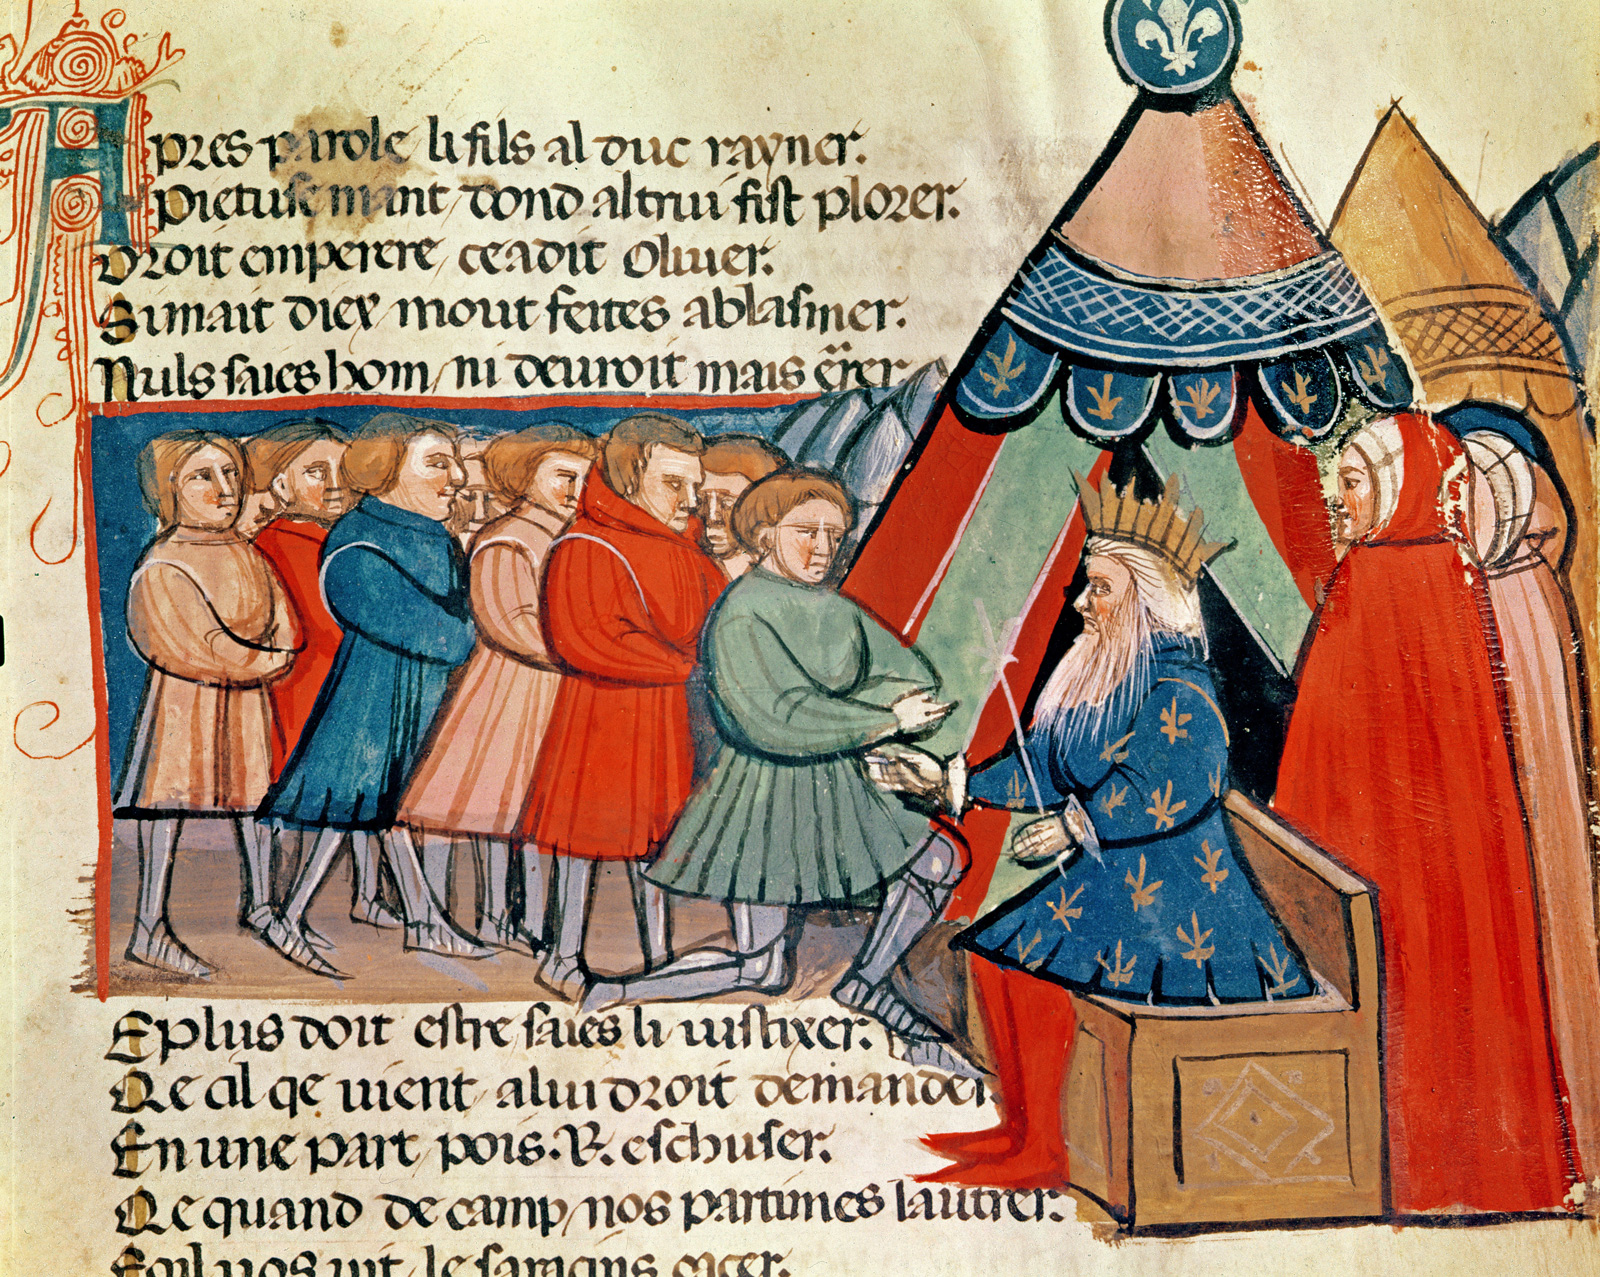 An illustration showing knights pledging their allegiance to Charlemagne from a Venetian codex, fourteenth century